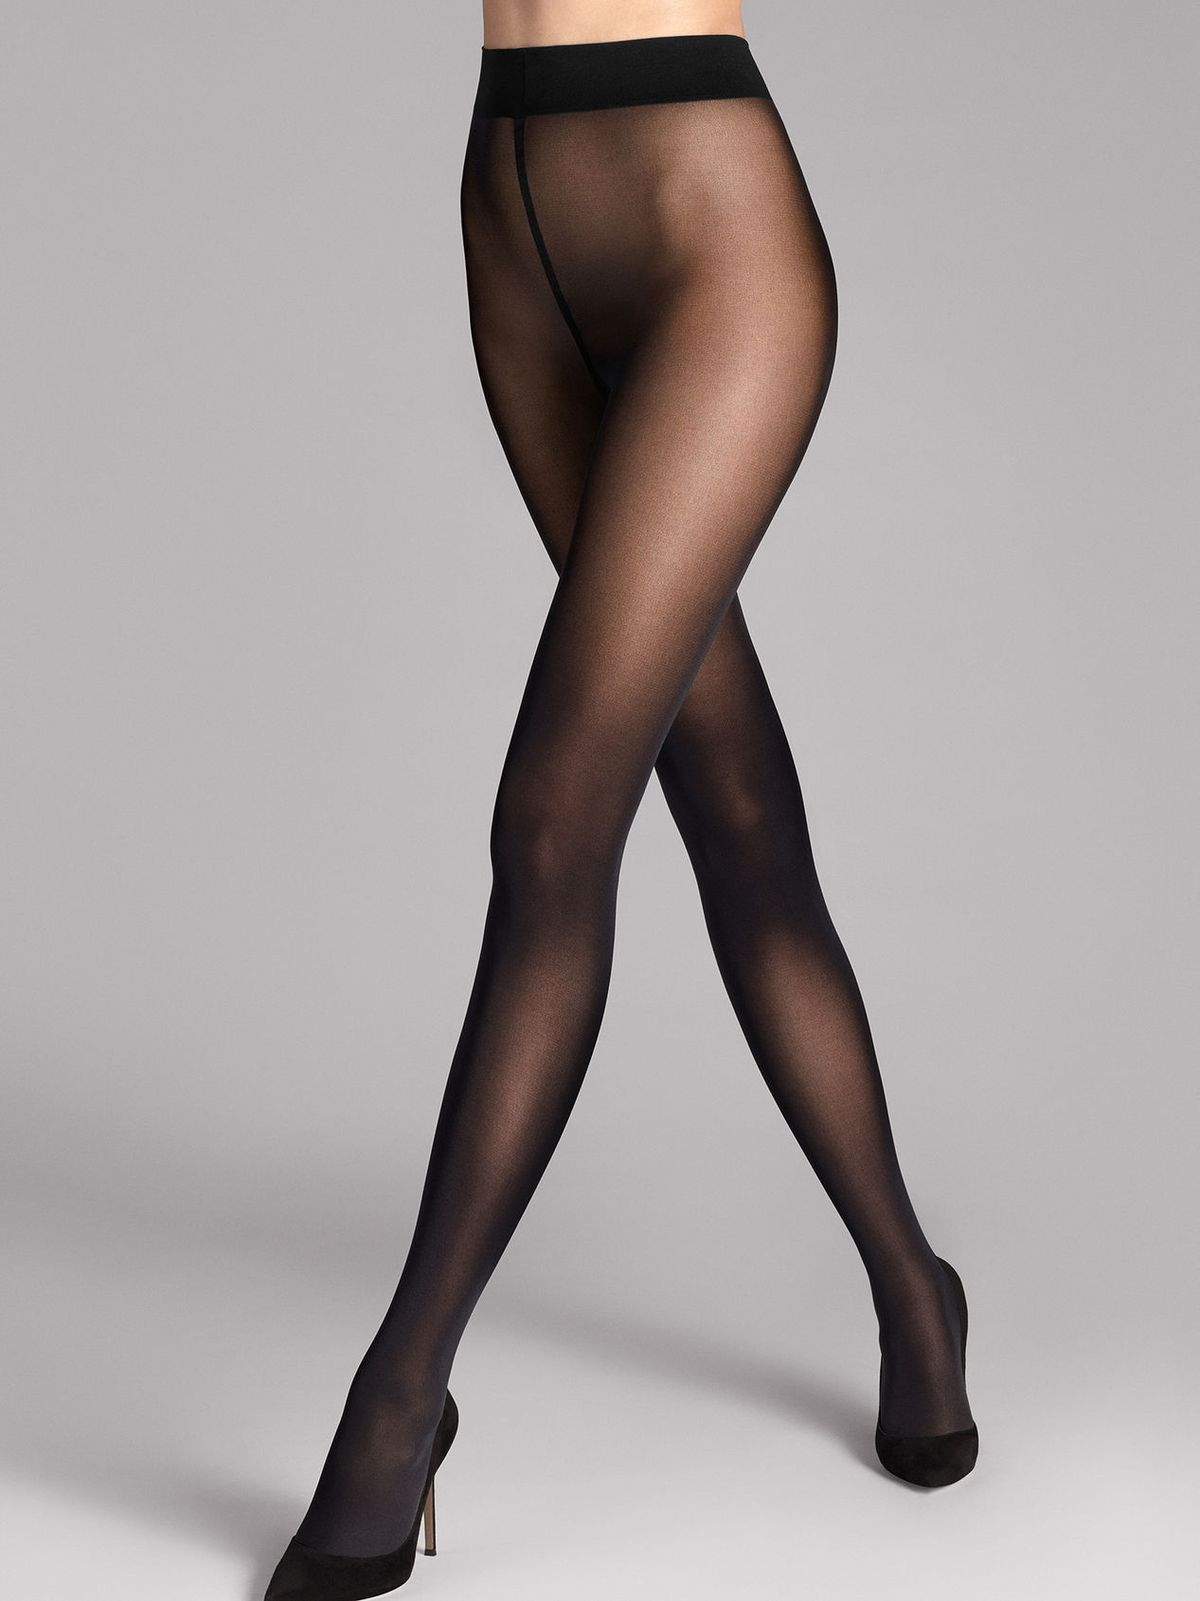 8c64a61b9abbe A model in Wolford tights.